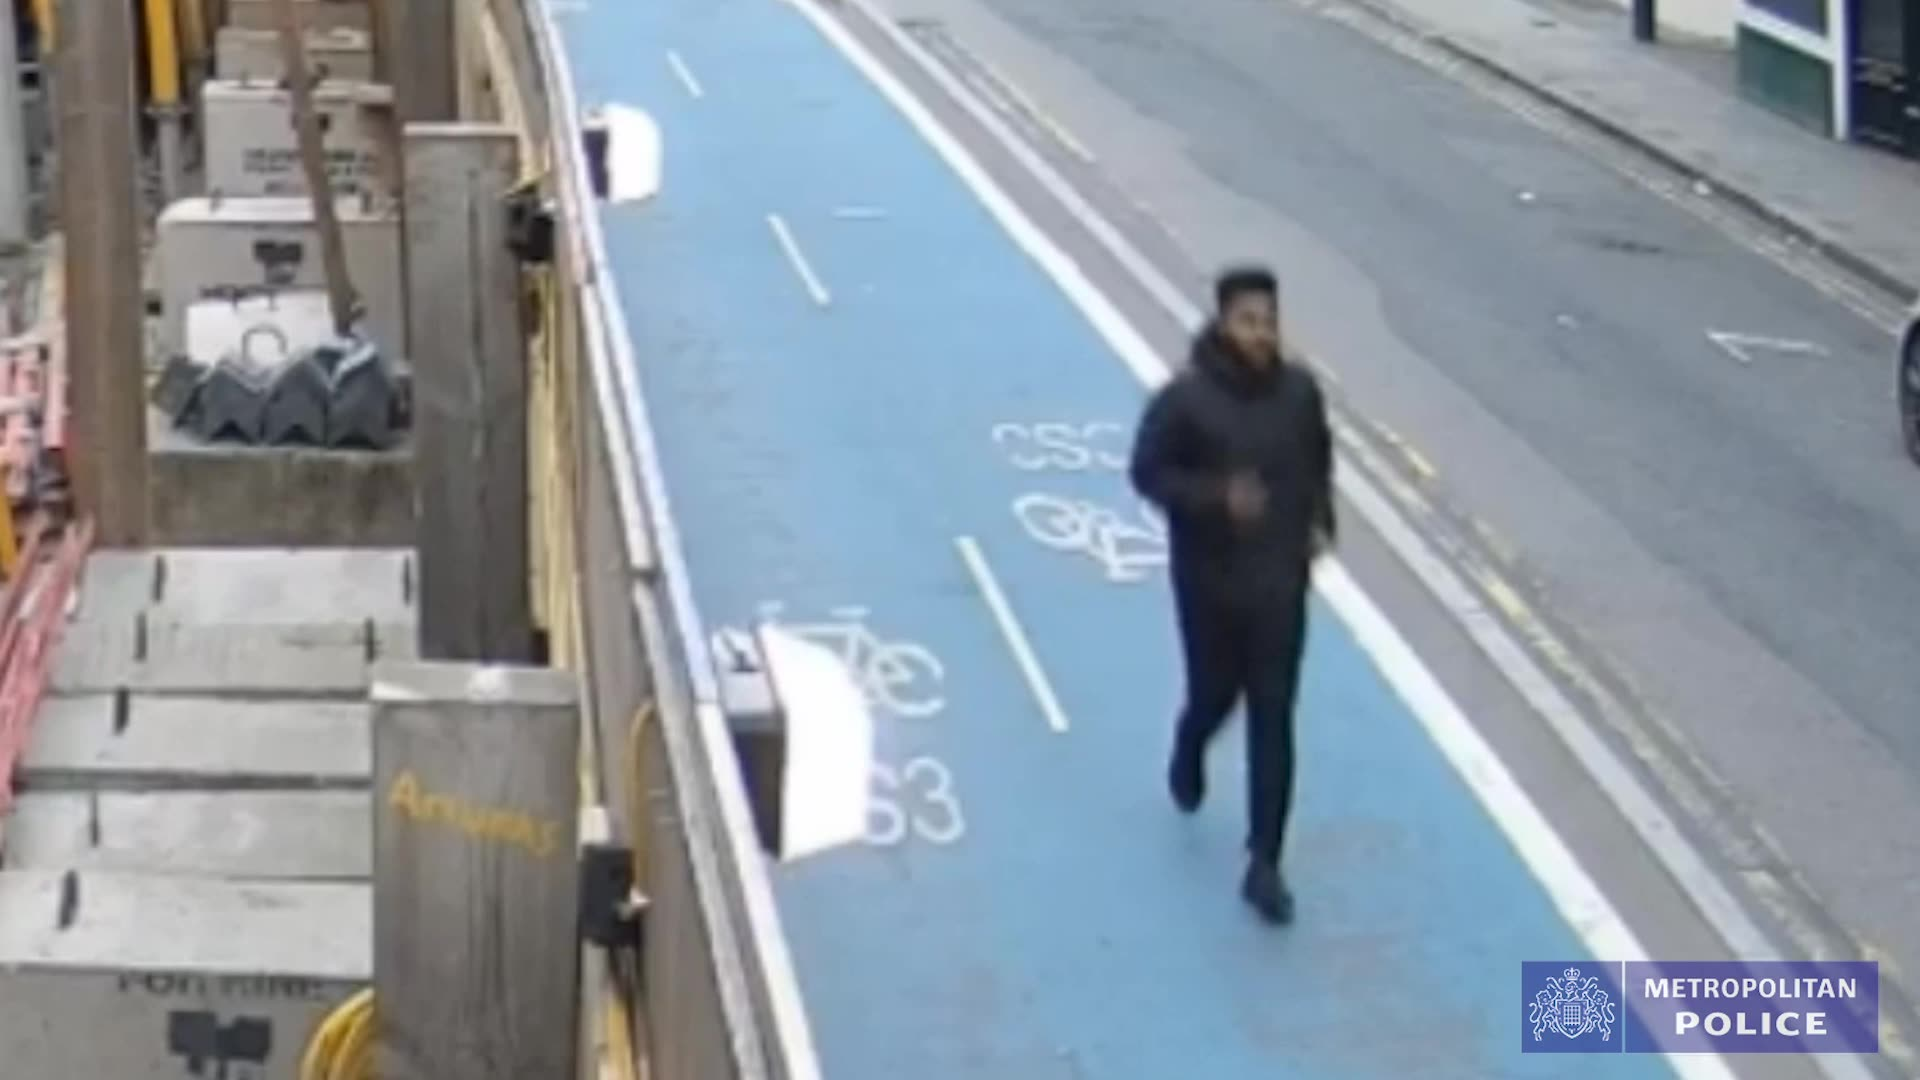 CCTV footage re Tower Hamlets sexual assault appeal